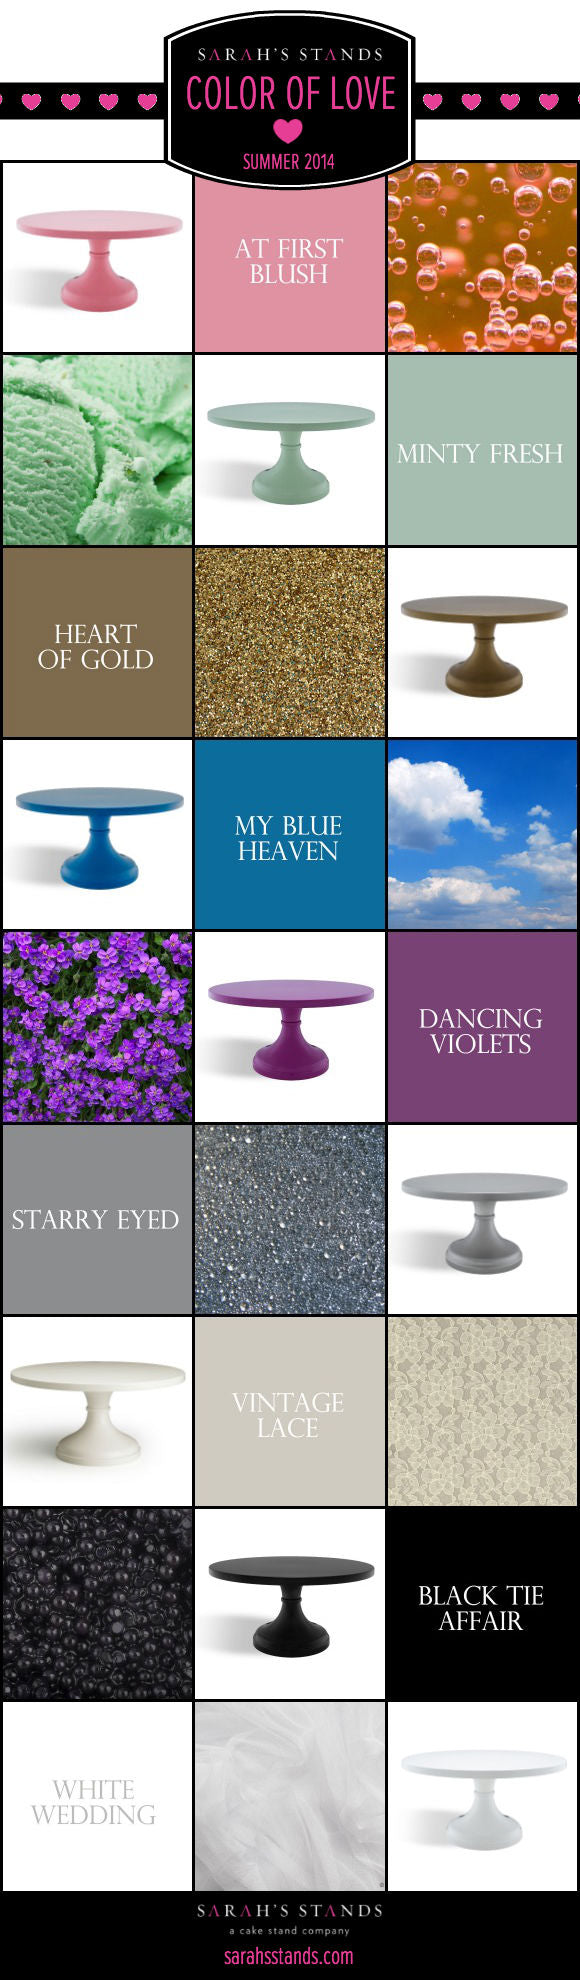 New Wedding Cake Stand Colors.